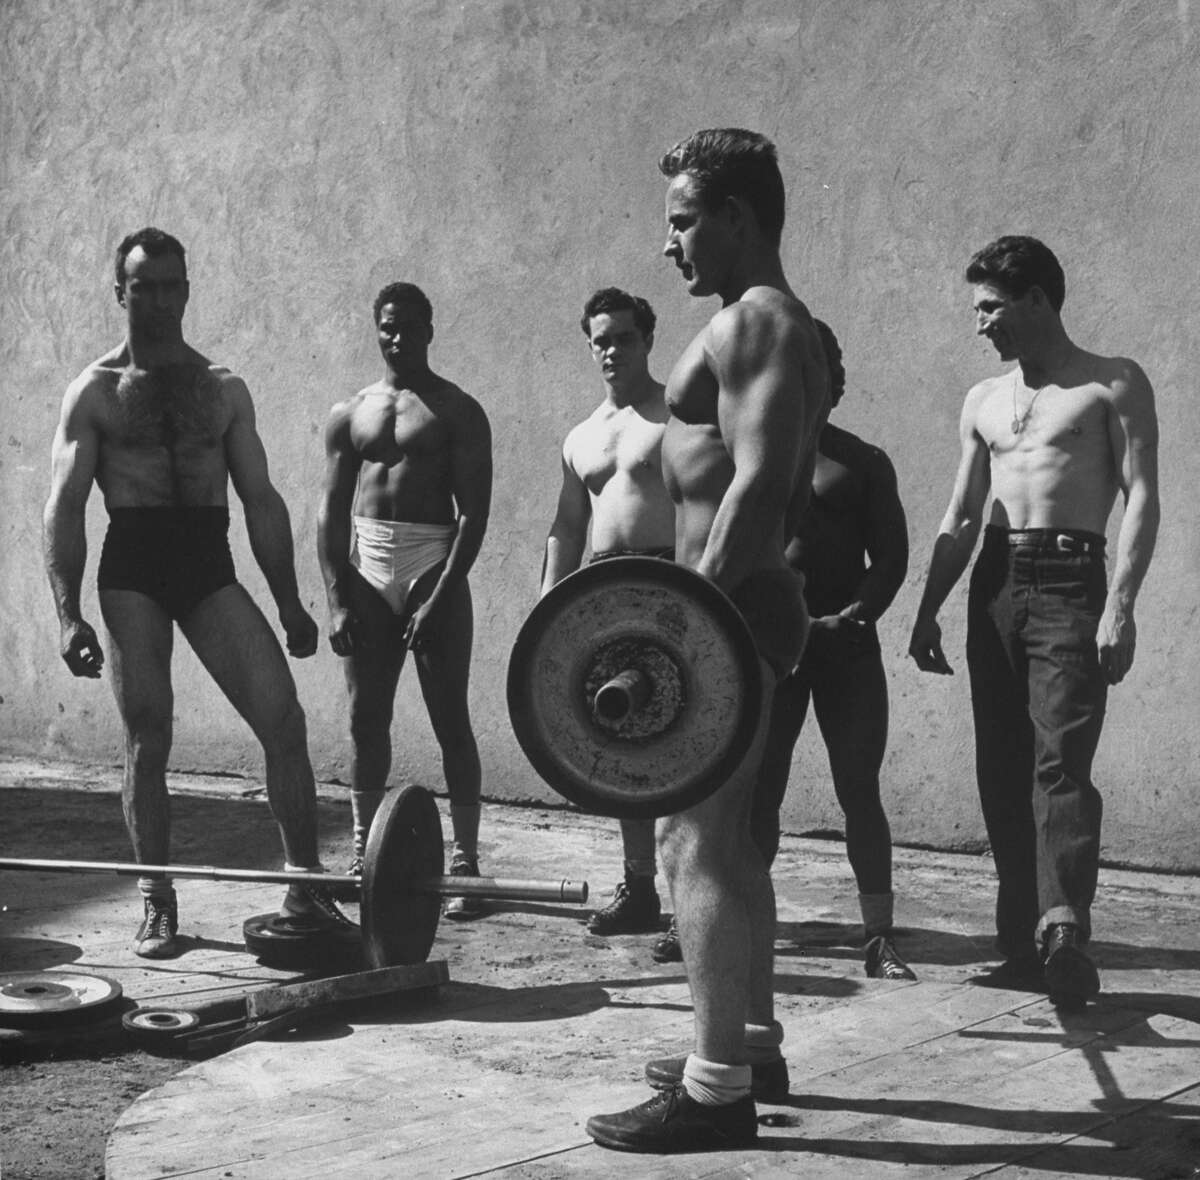 Prisoners at San Quentin weightlifting in prison yard during recreation period. San Quentin, California 1947.